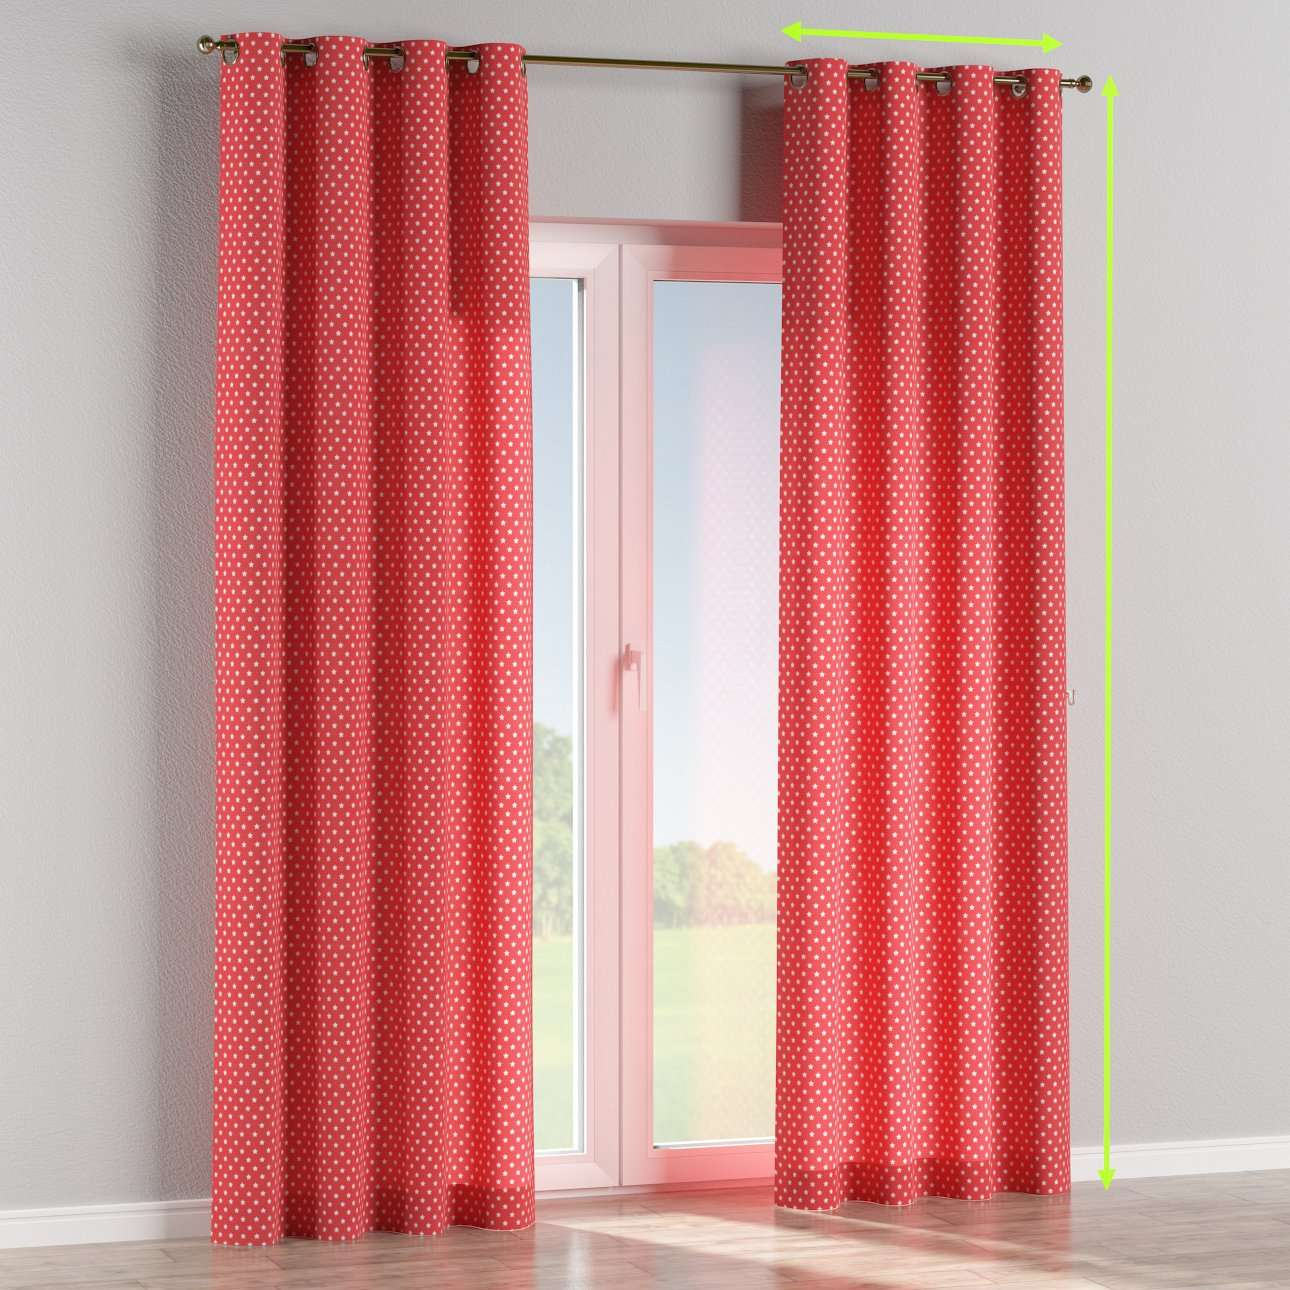 Eyelet lined curtains in collection Ashley, fabric: 137-69